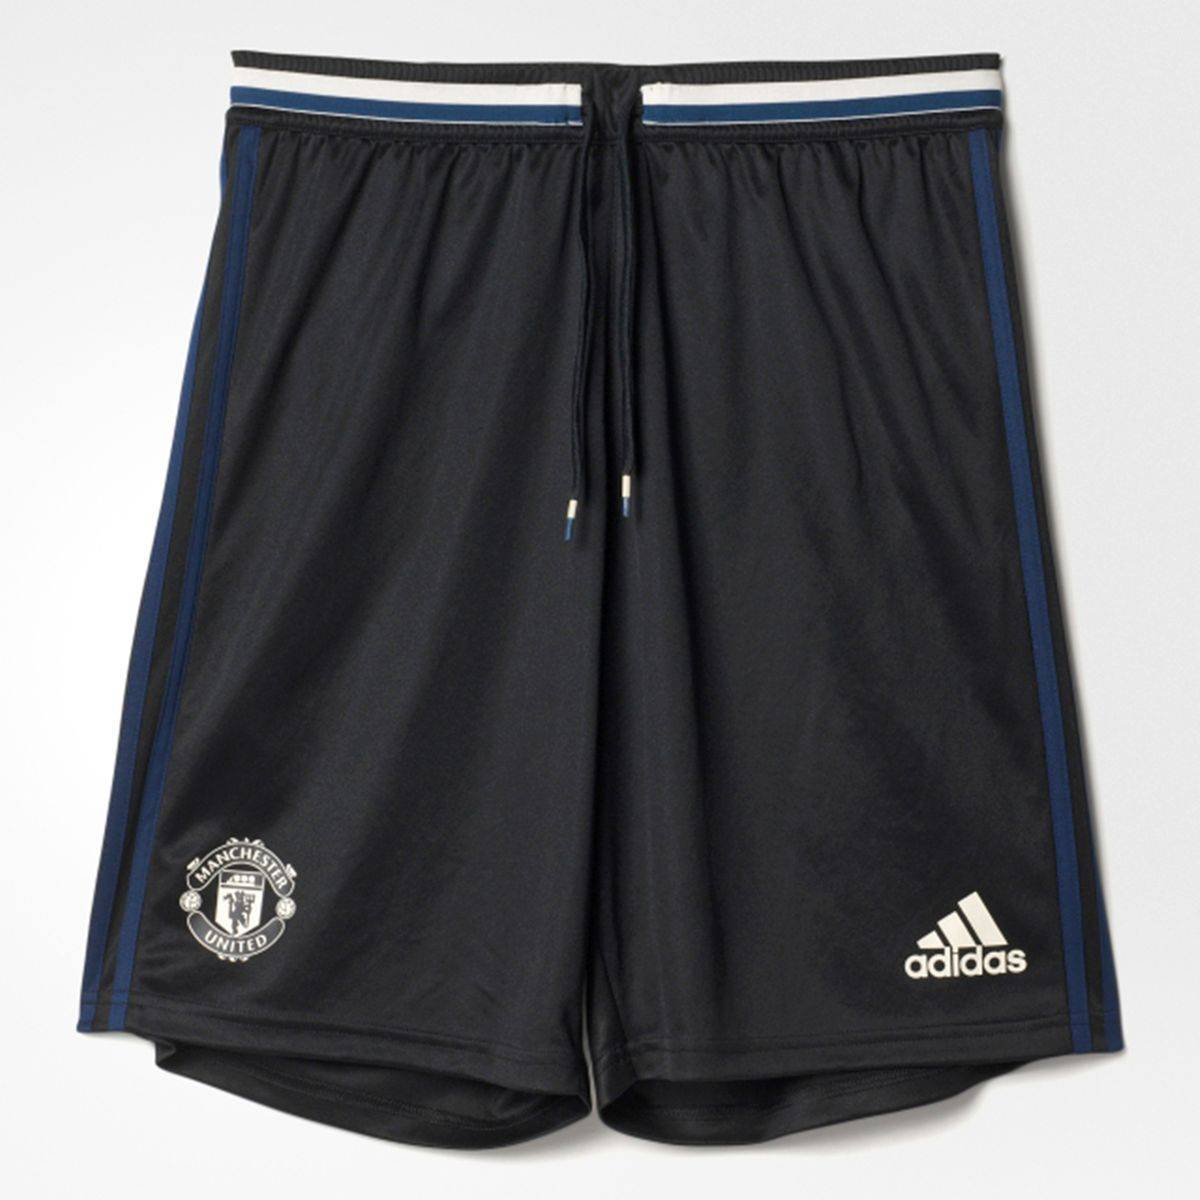 Adidas Short d'entrainement Manchester United FC - adidas